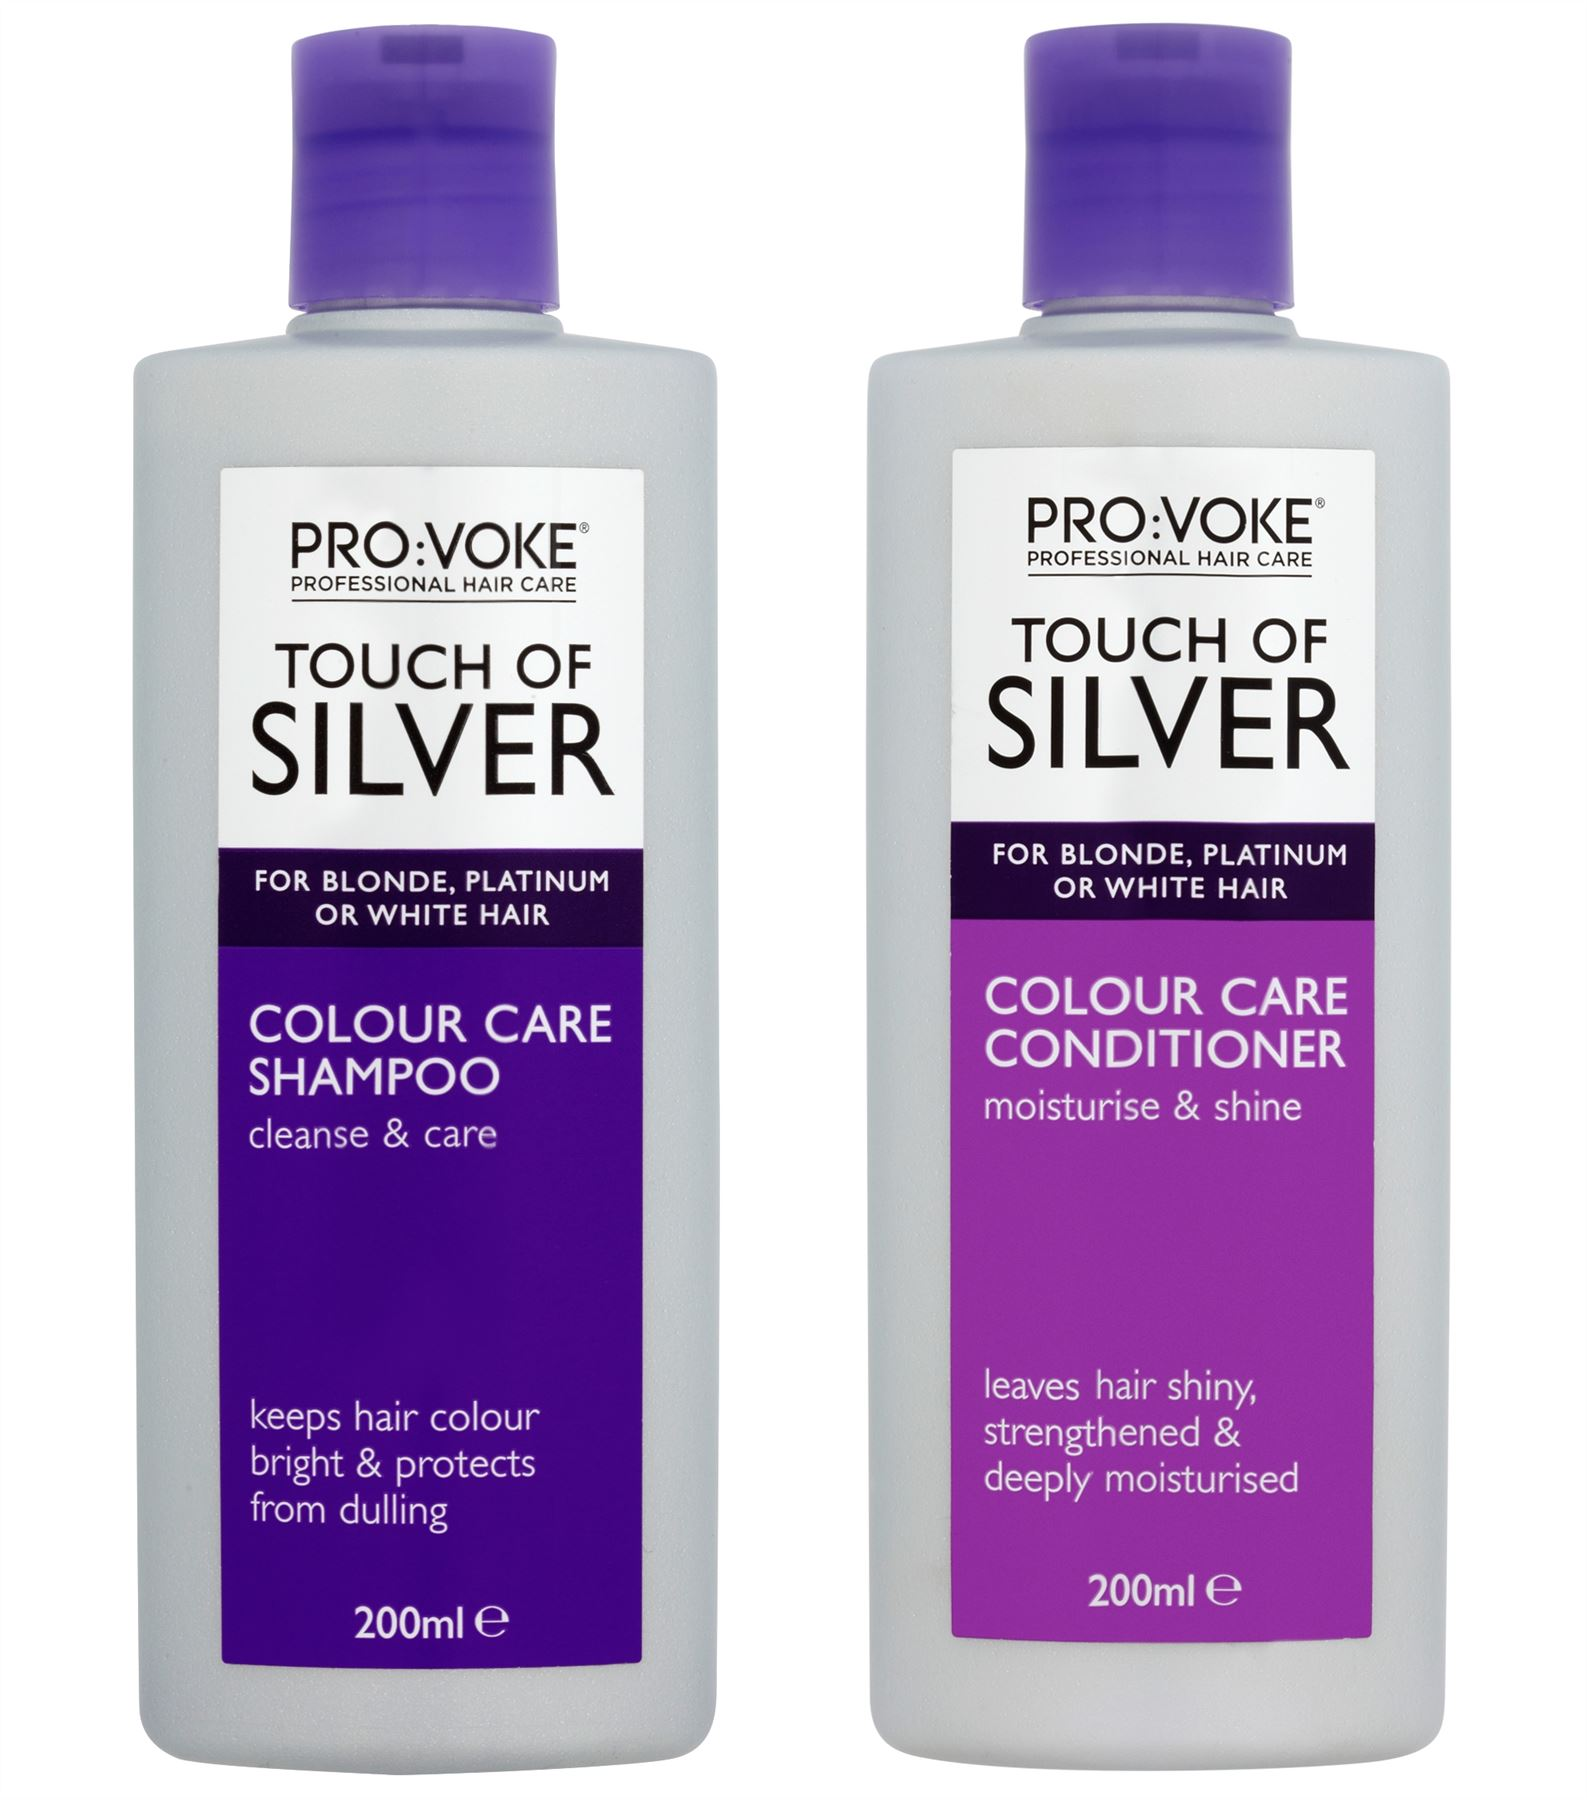 Image is loading Touch-Of-Silver-Daily-Shampoo-amp-Conditioner-200ml- f4409693f6ee